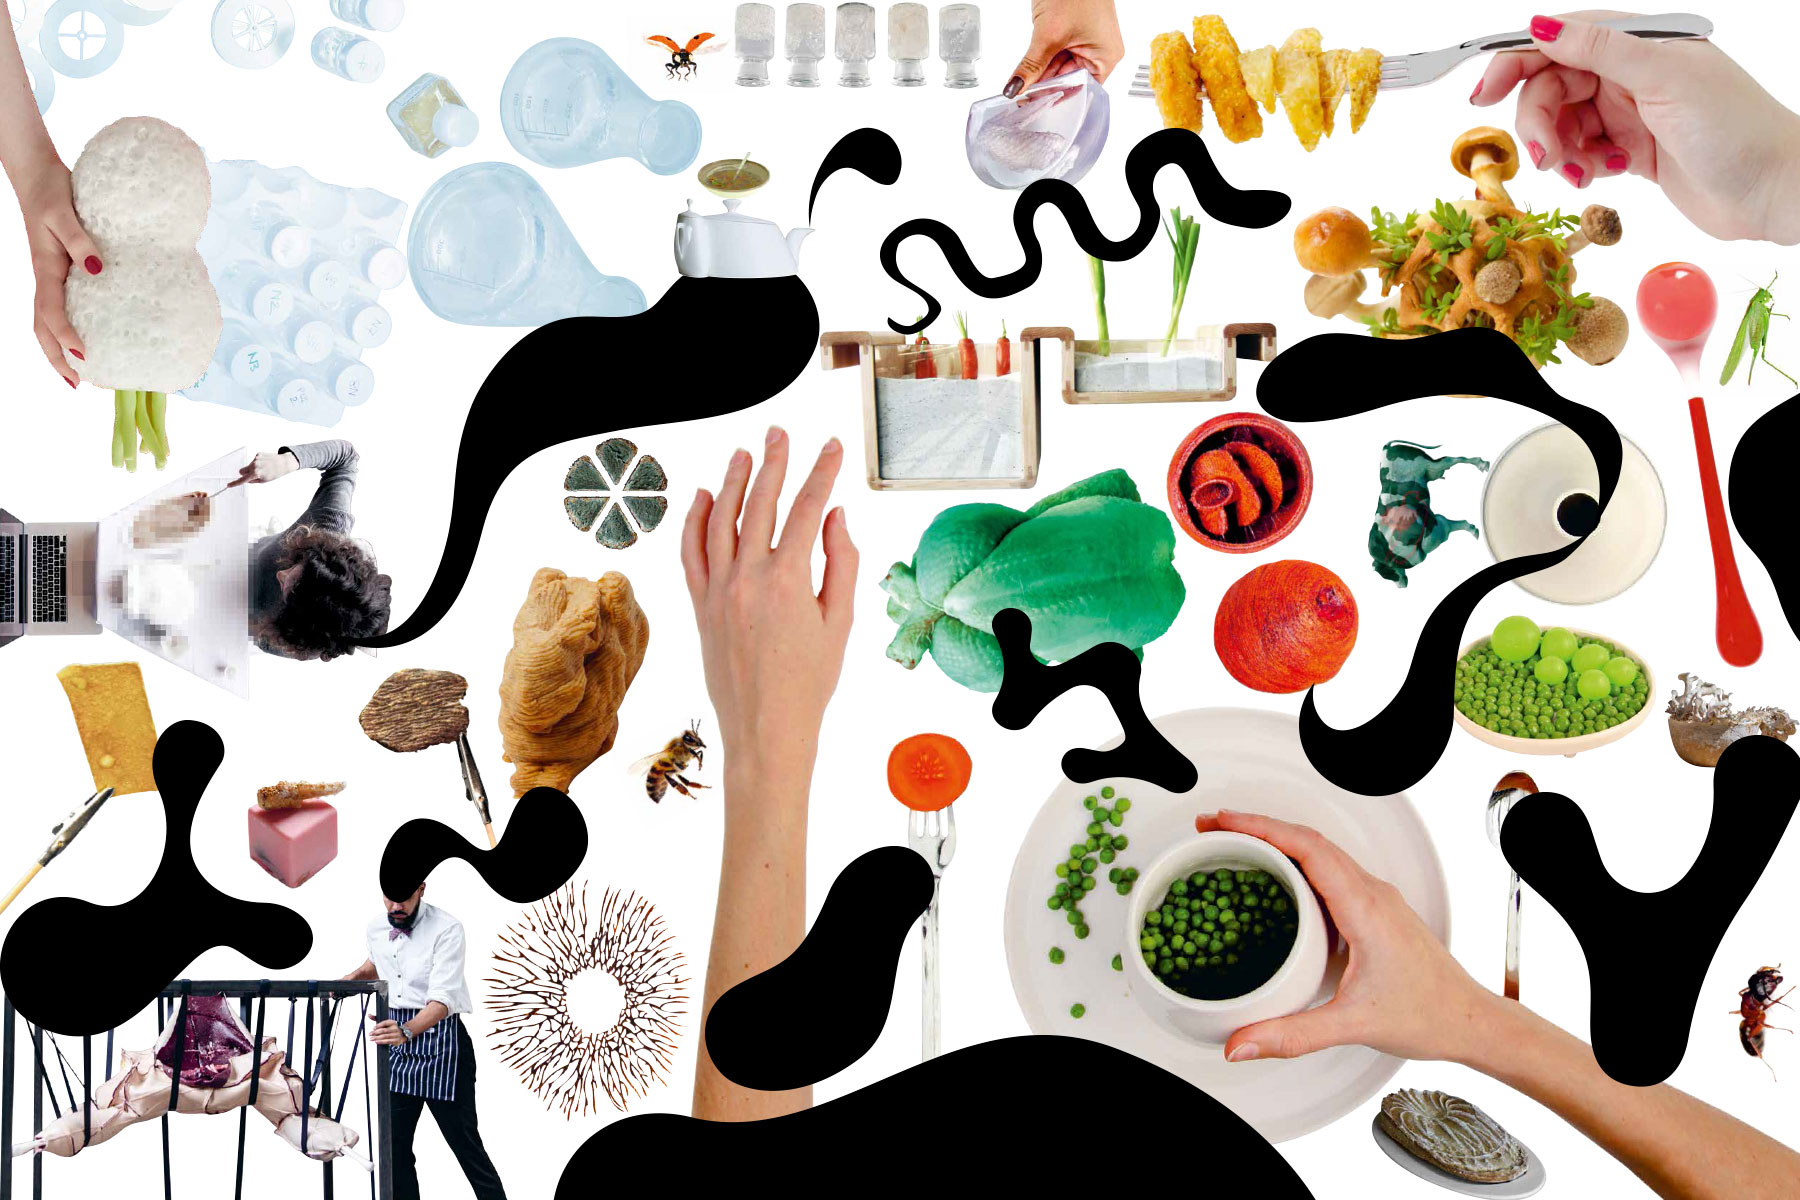 Food Revolution 5.0 exhibition in Hamburg examines food design and the future of food.